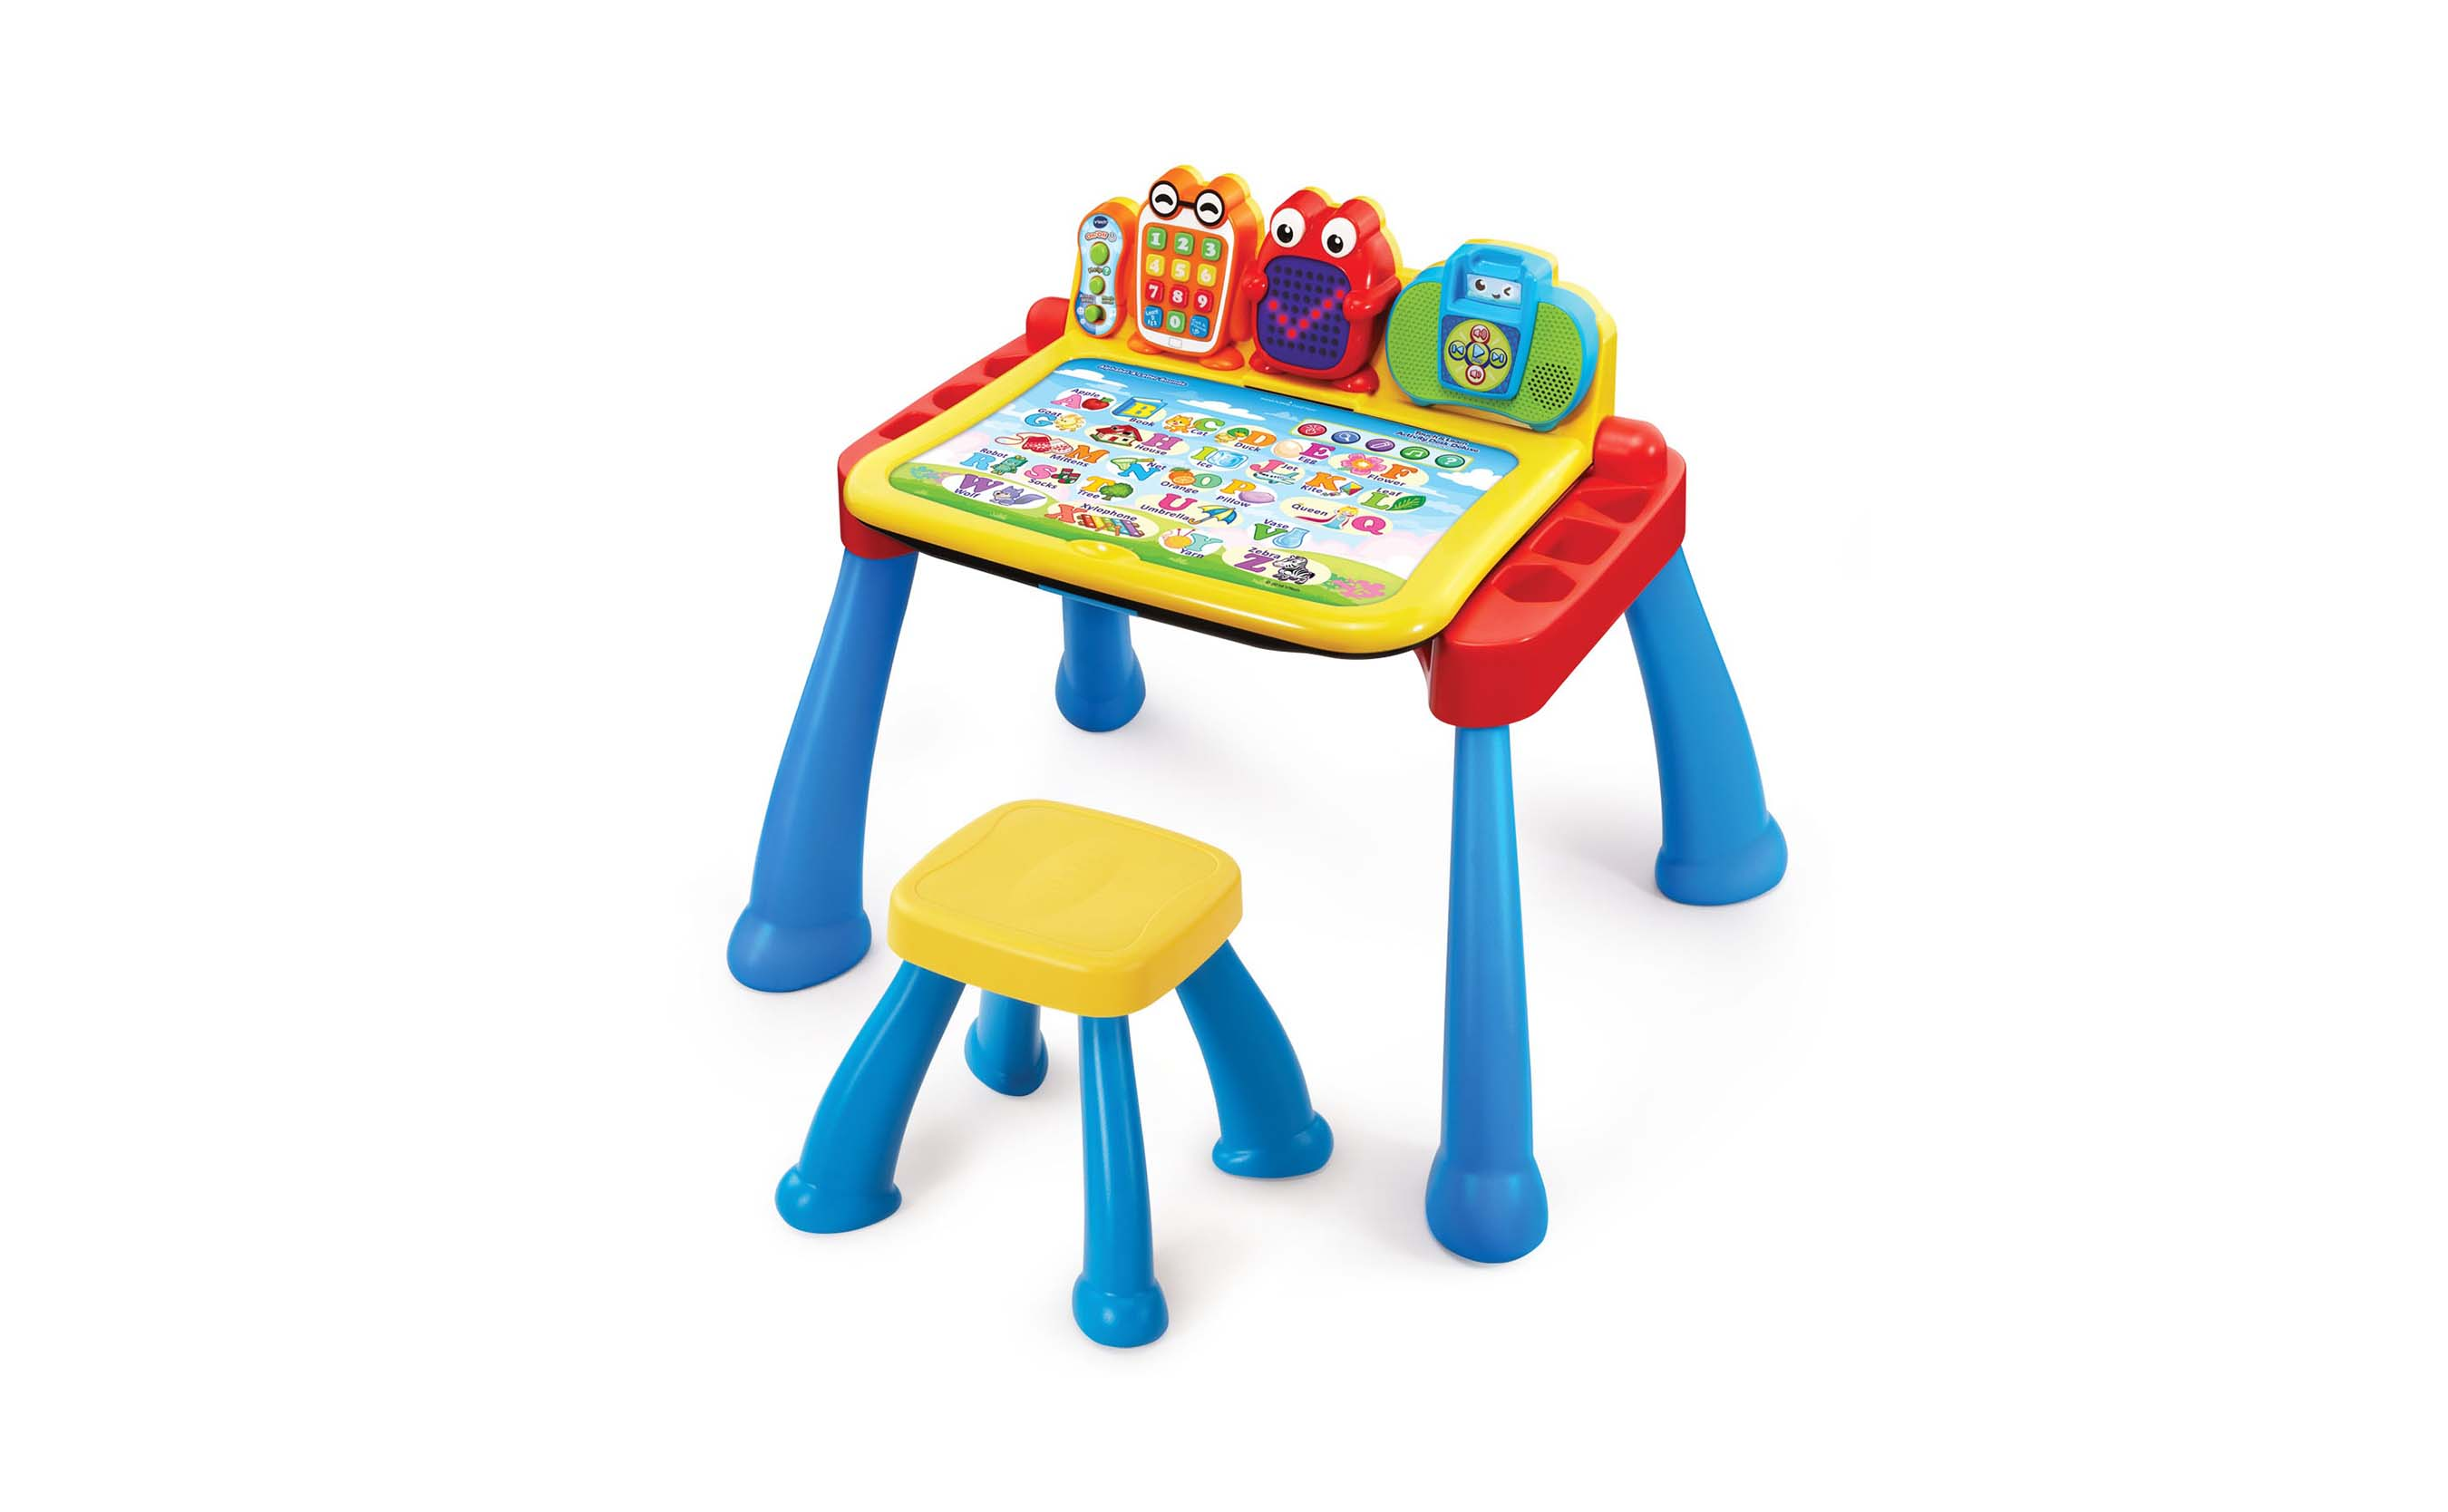 Expandable Three-in-One Touch & Learn Activity Desk™ Deluxe from VTech® Available Now